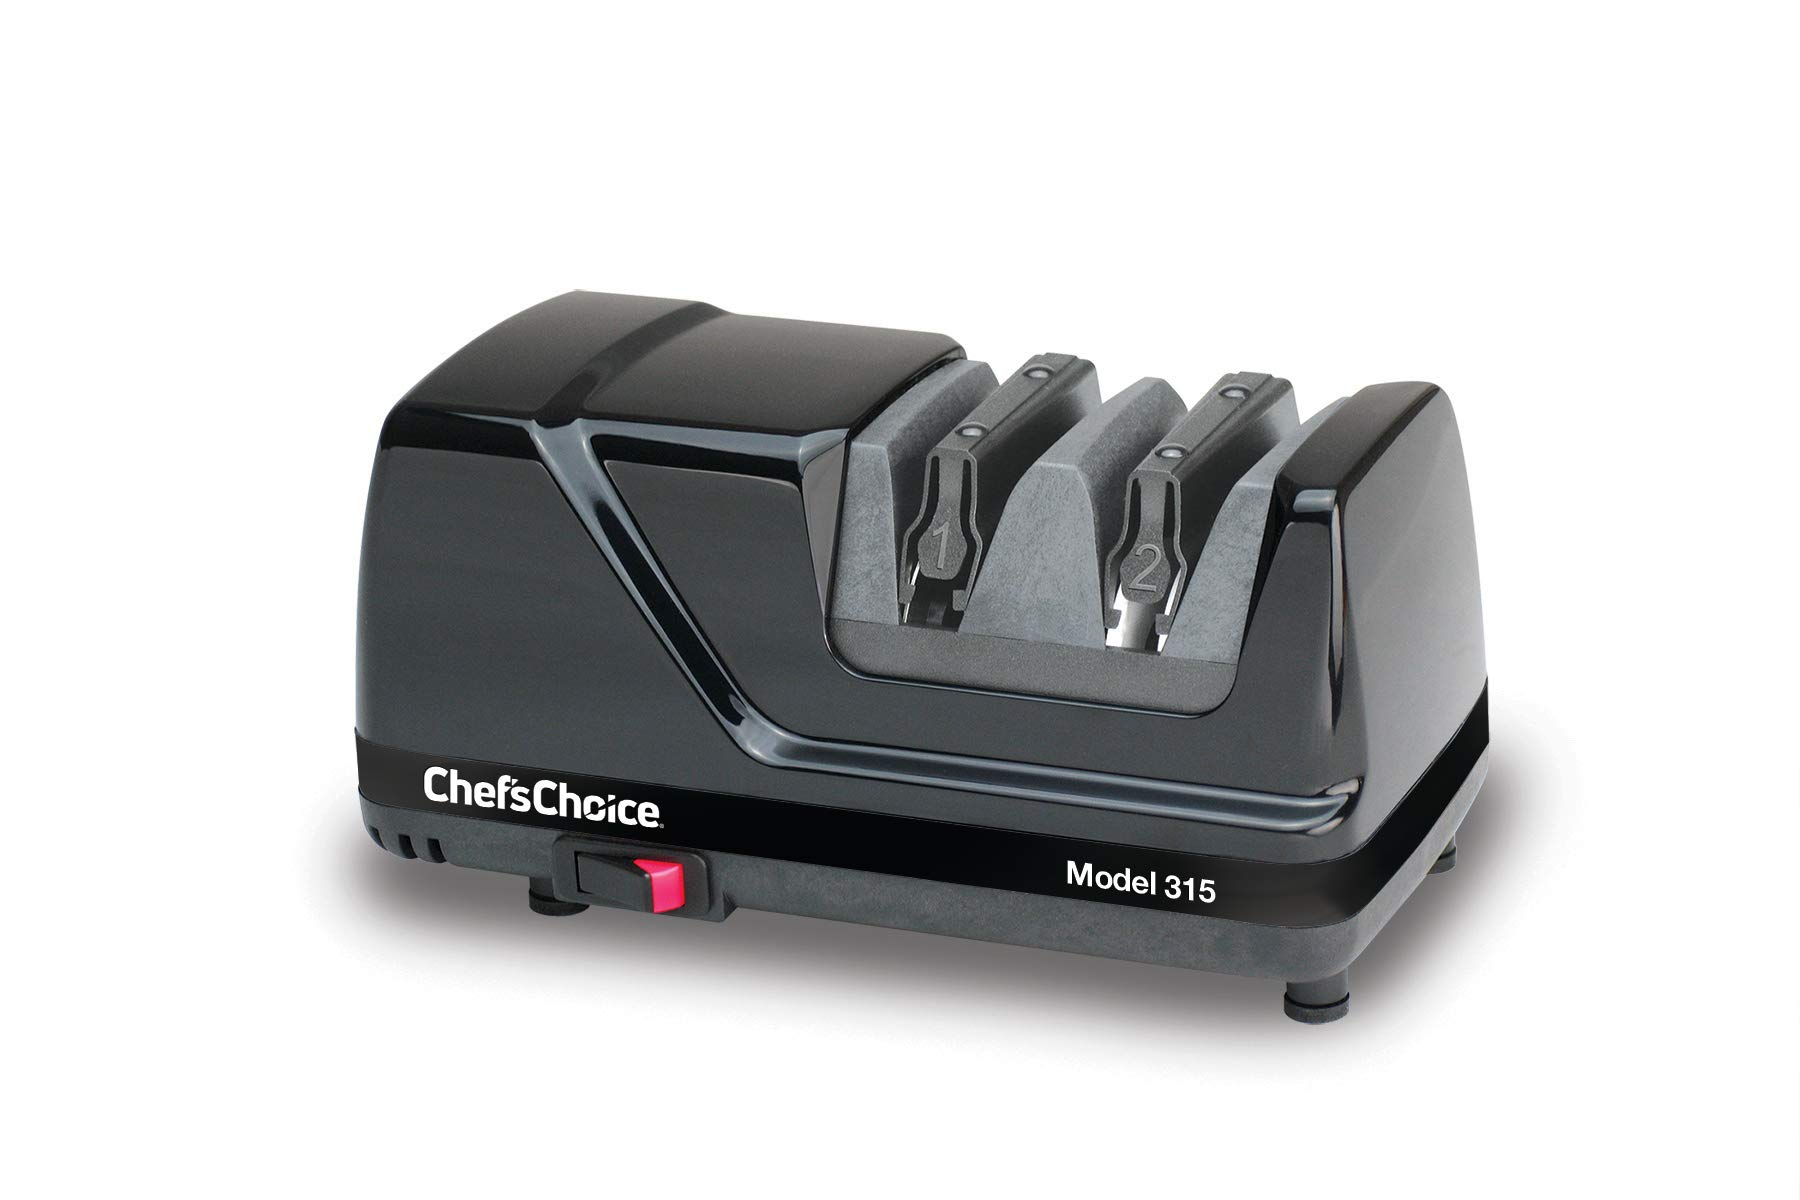 Chef'sChoice 315 XV Versatile Professional Diamond Hone Electric Knife Sharpener for Straight edge or Serrated knives 15 and 20 Degree Class, 2-Stage, Black by Chef'sChoice (Image #2)